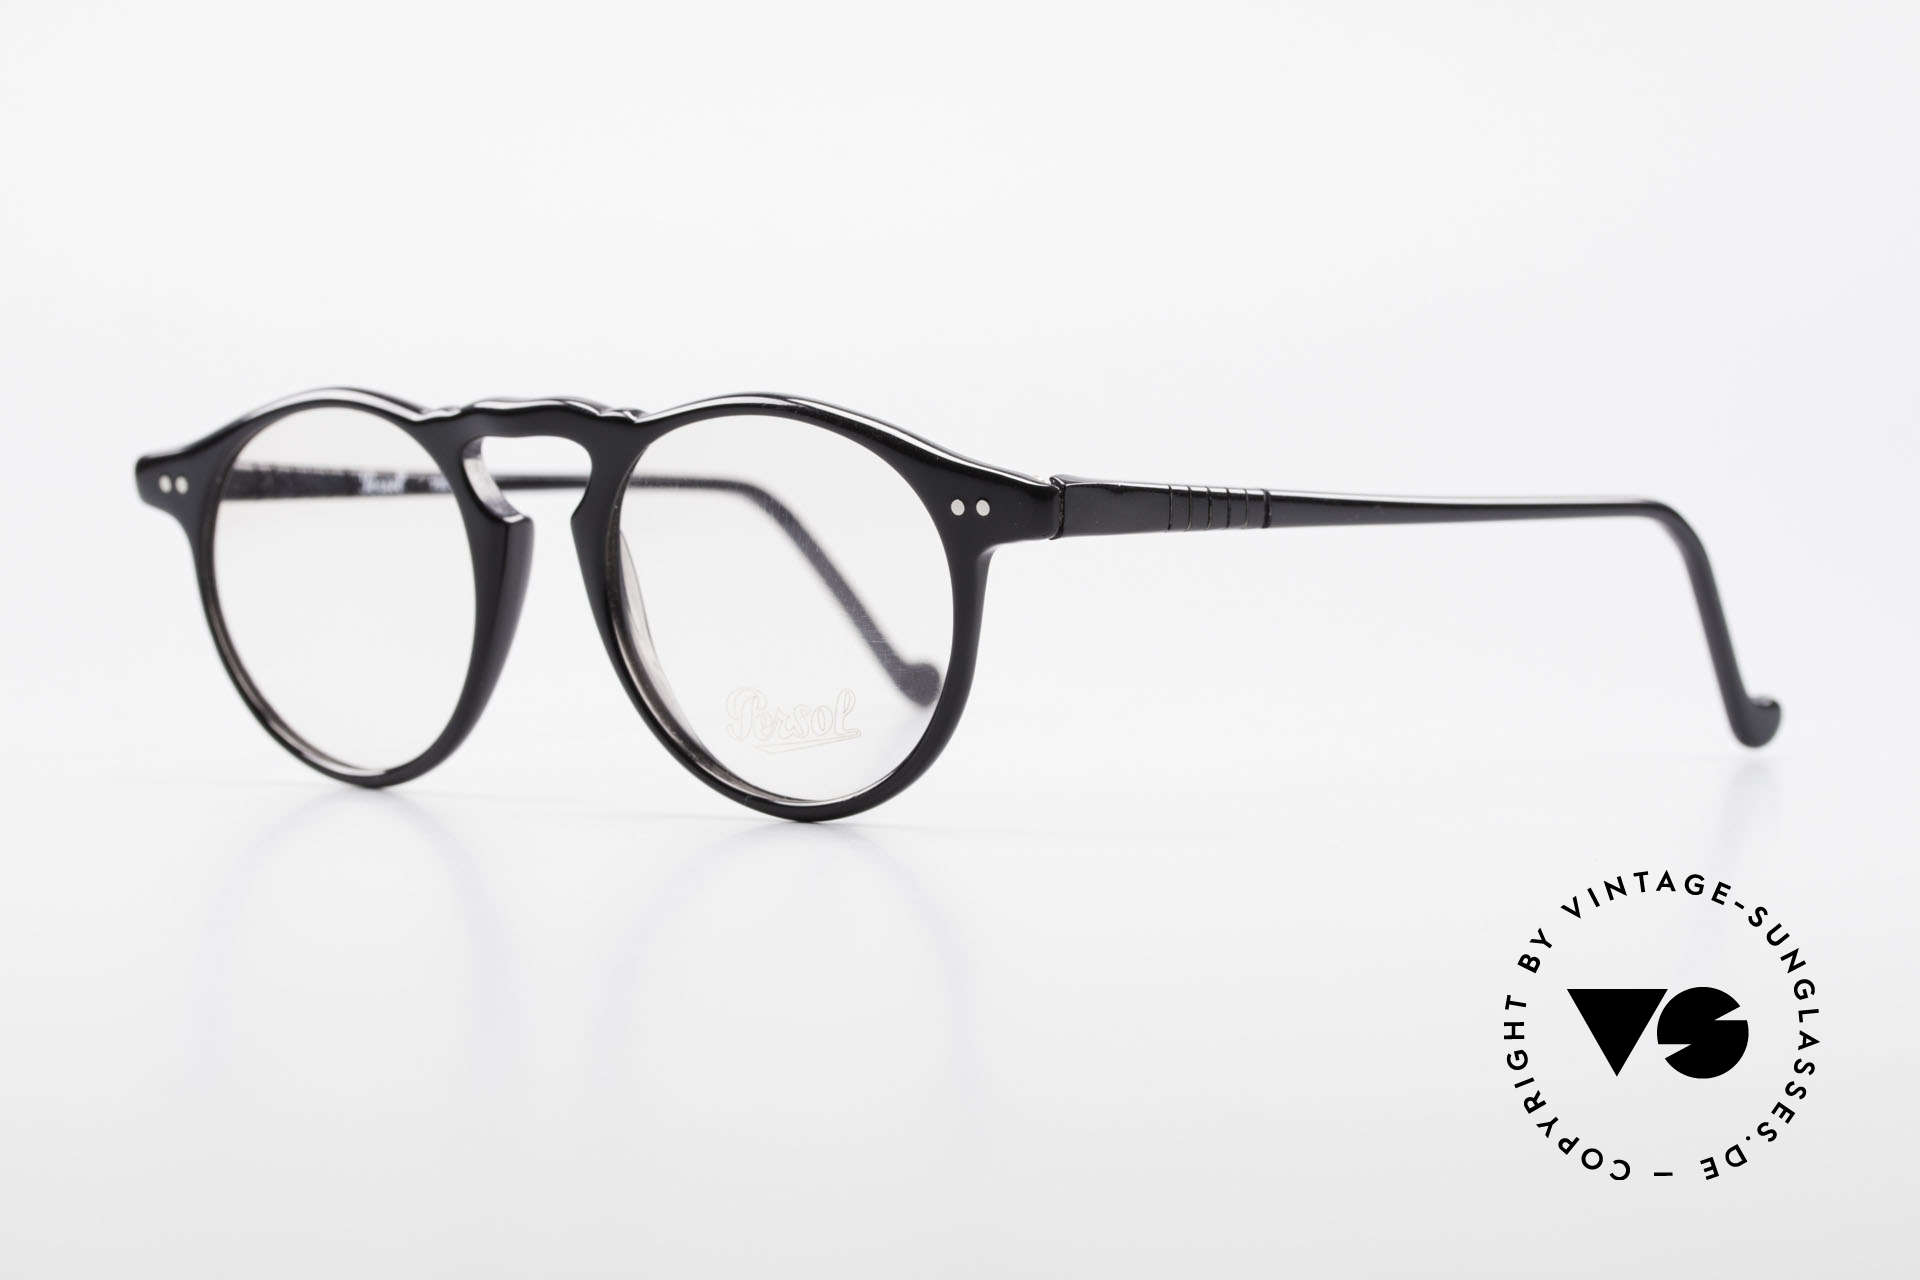 Persol 750 Ratti 80's Vintage Panto Eyeglasses, 125mm width = designed for small faces / heads, Made for Men and Women